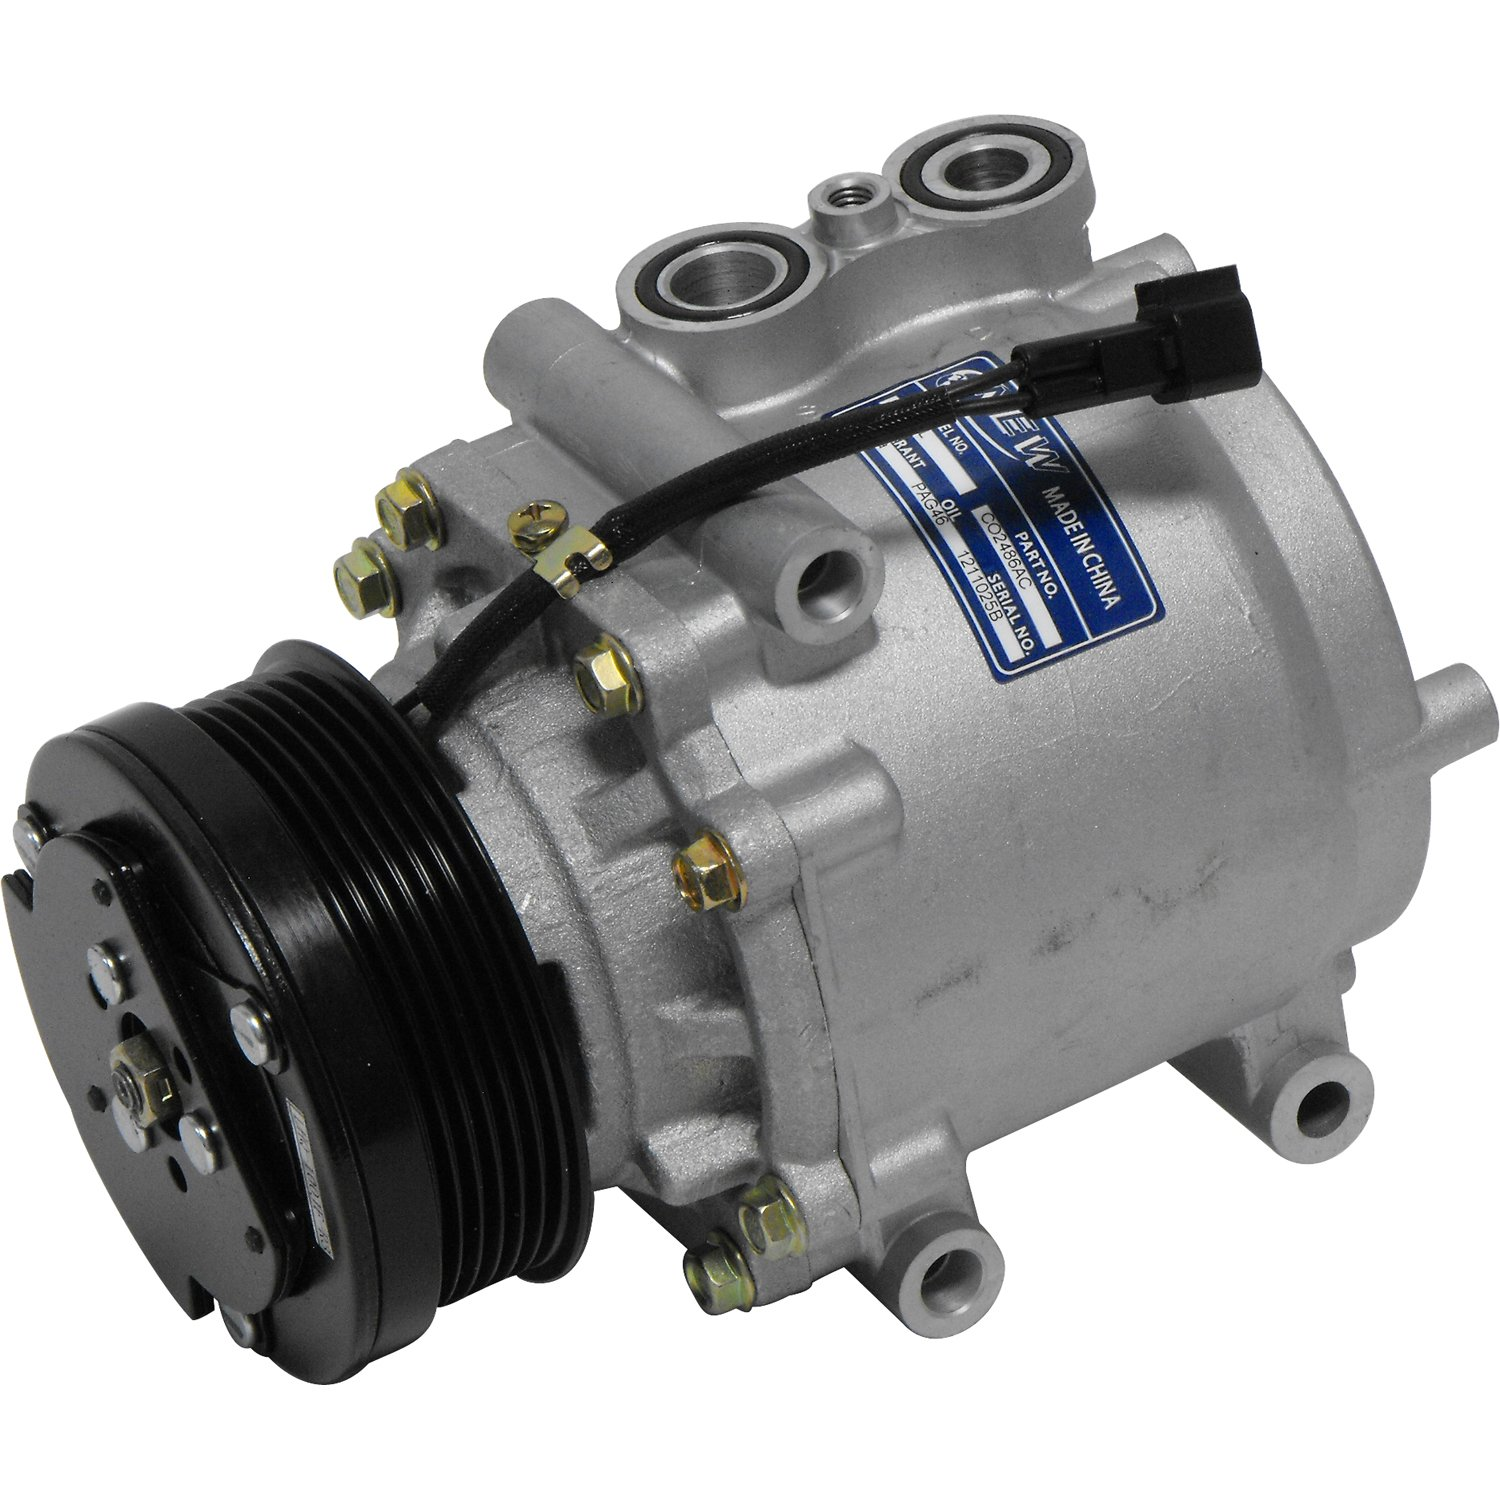 71dmZ9I1LwL._SL1500_ amazon com compressors & parts air conditioning automotive  at webbmarketing.co